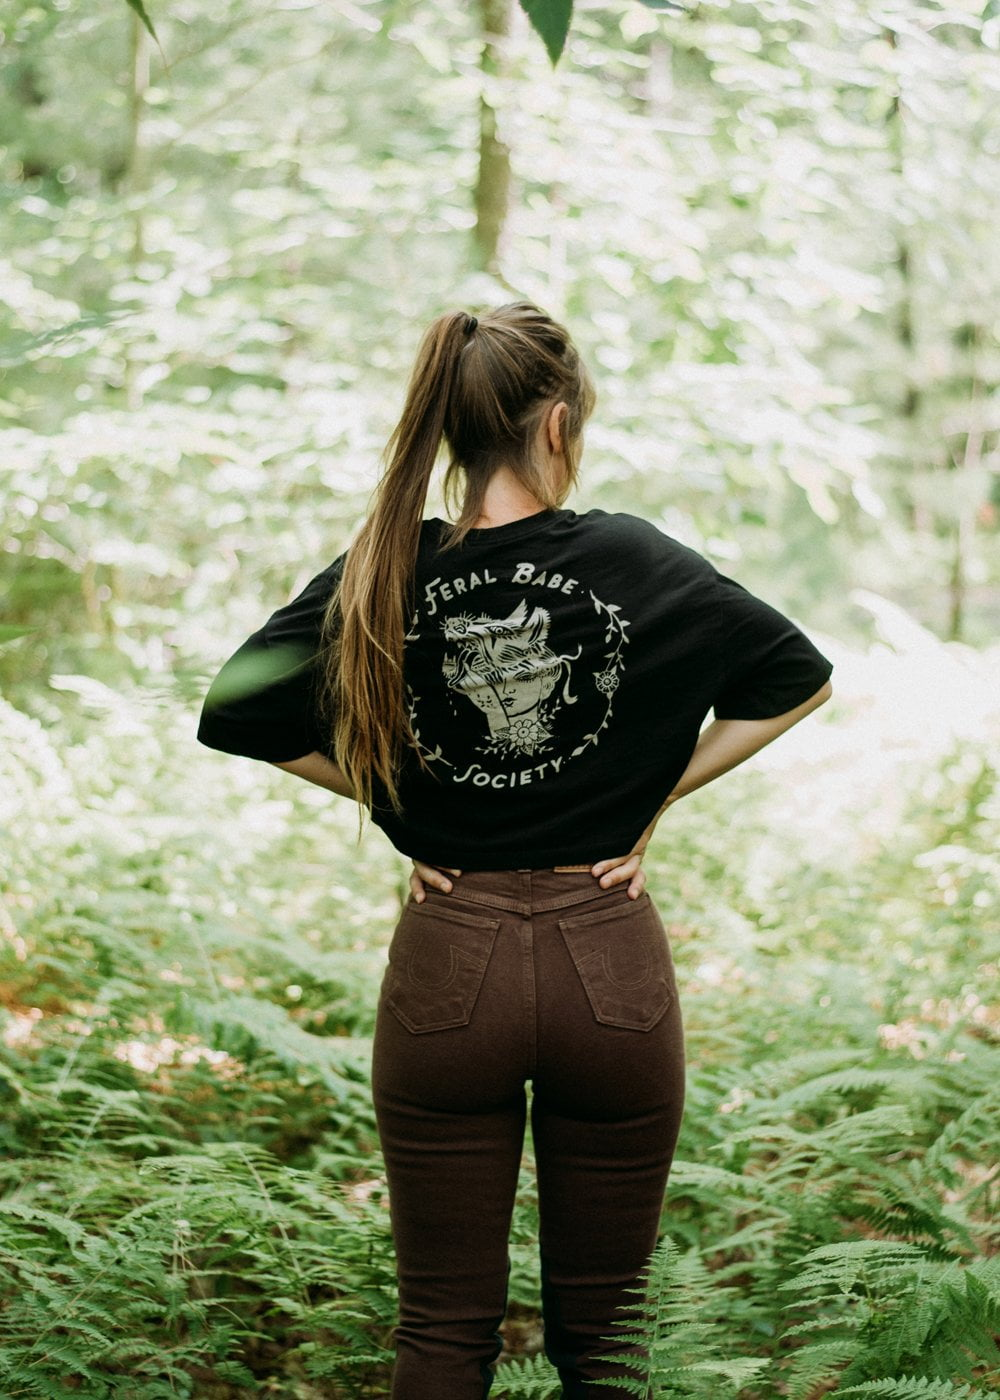 Feral Babe Society - Vintaged Cropped Tee